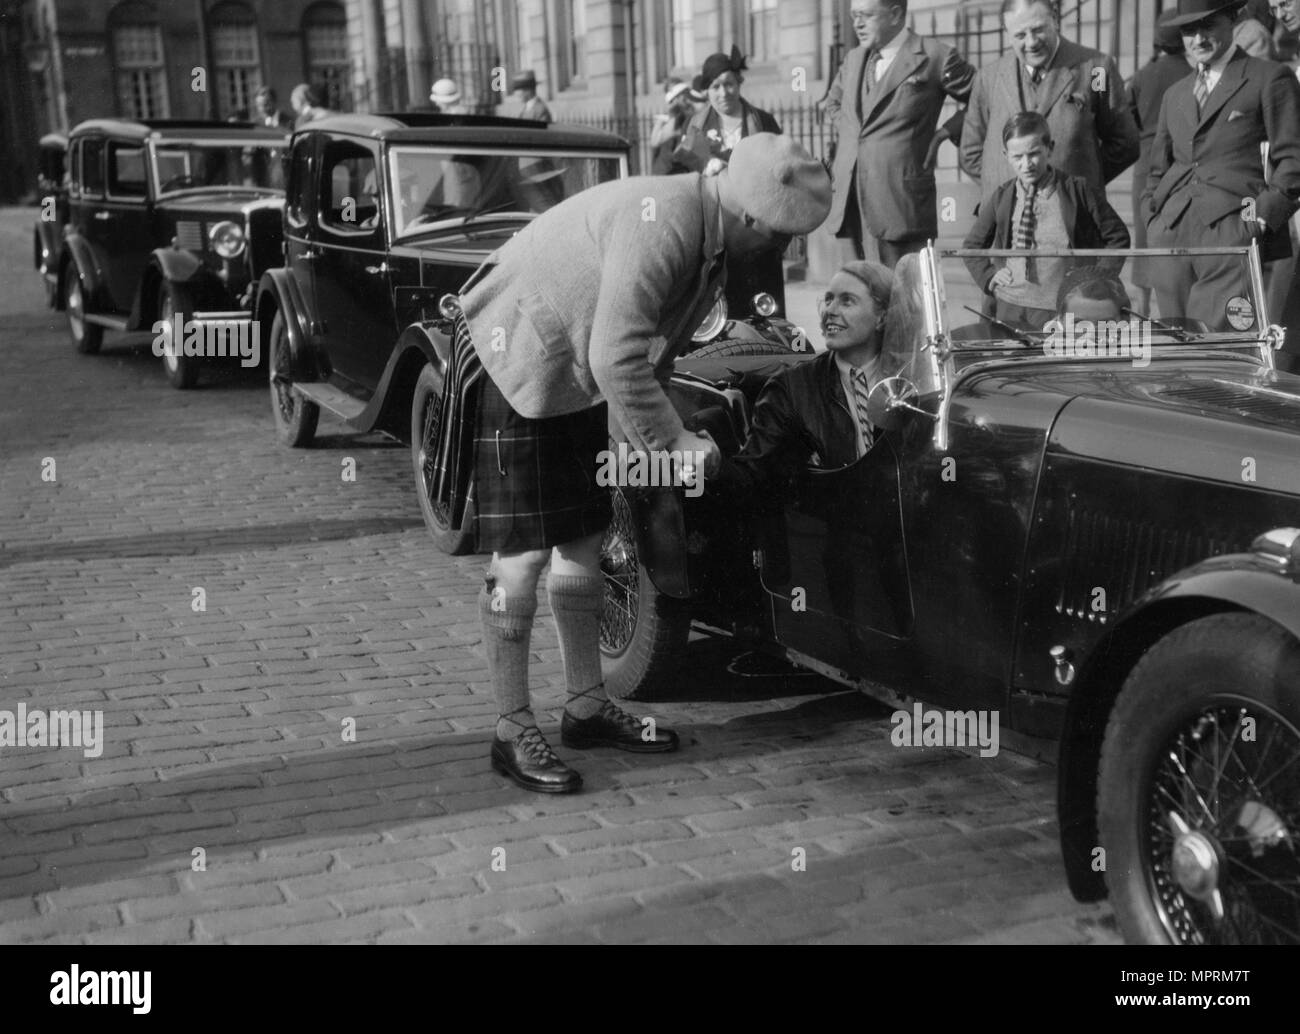 Kitty Brunell in her Aston Martin, chatting to a man in Highland dress, RSAC Scottish Rally, 1933. Artist: Bill Brunell. - Stock Image